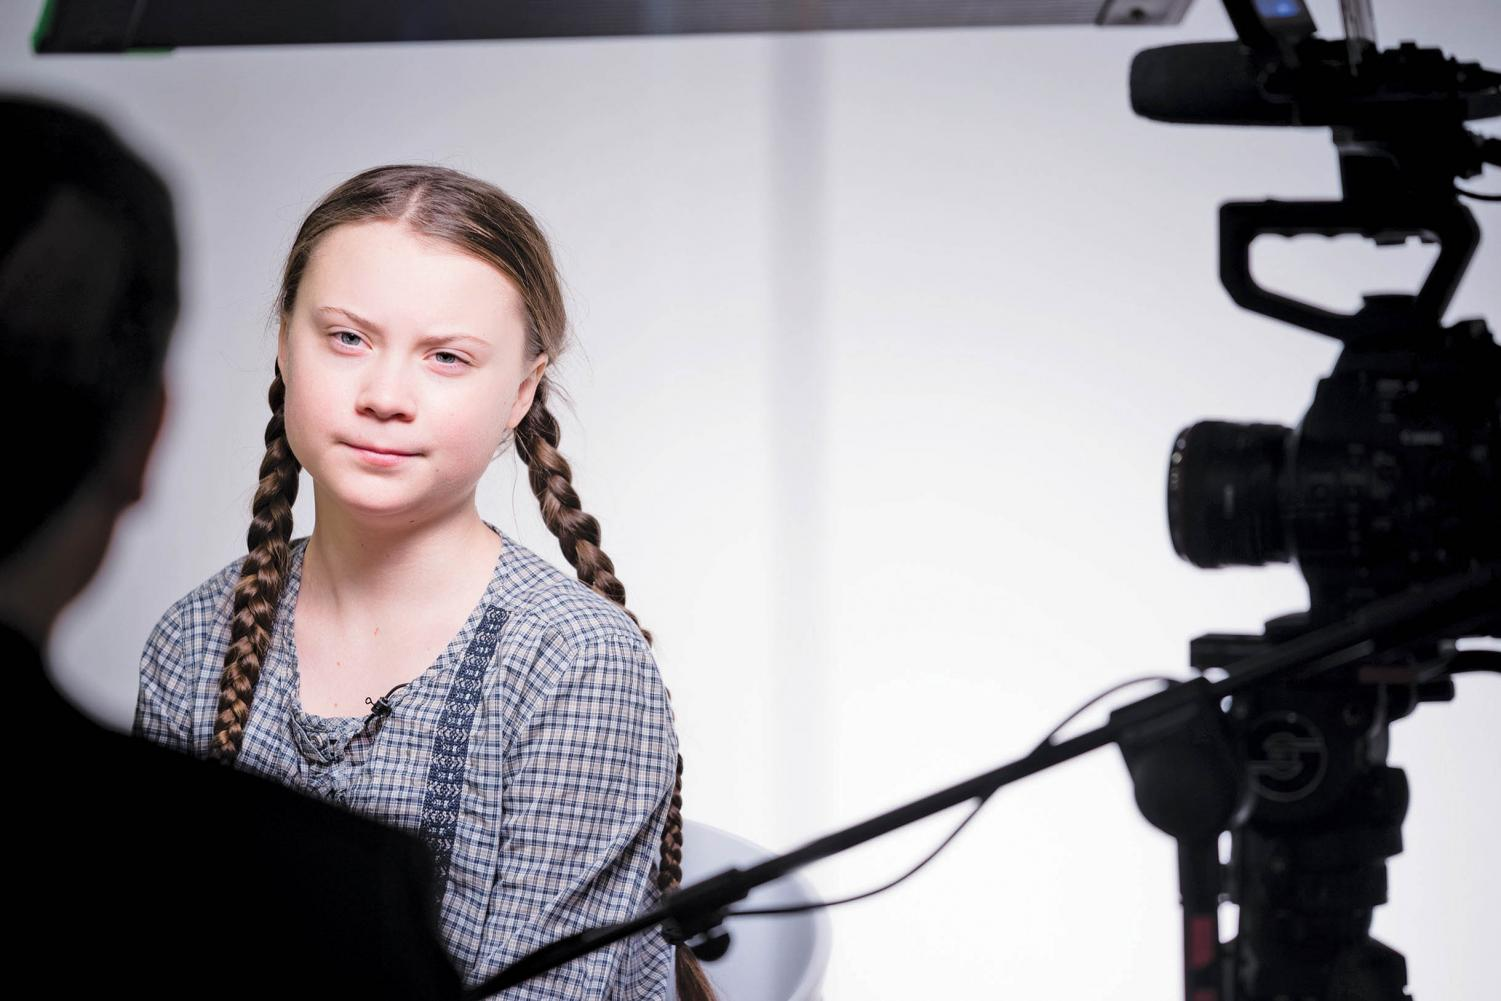 """I shouldn't be up here. I should be back at school on the other side of the ocean. Yet you all come to us young people for hope. How dare you,"" Thunberg said at the United Nations Climate Action Summit."